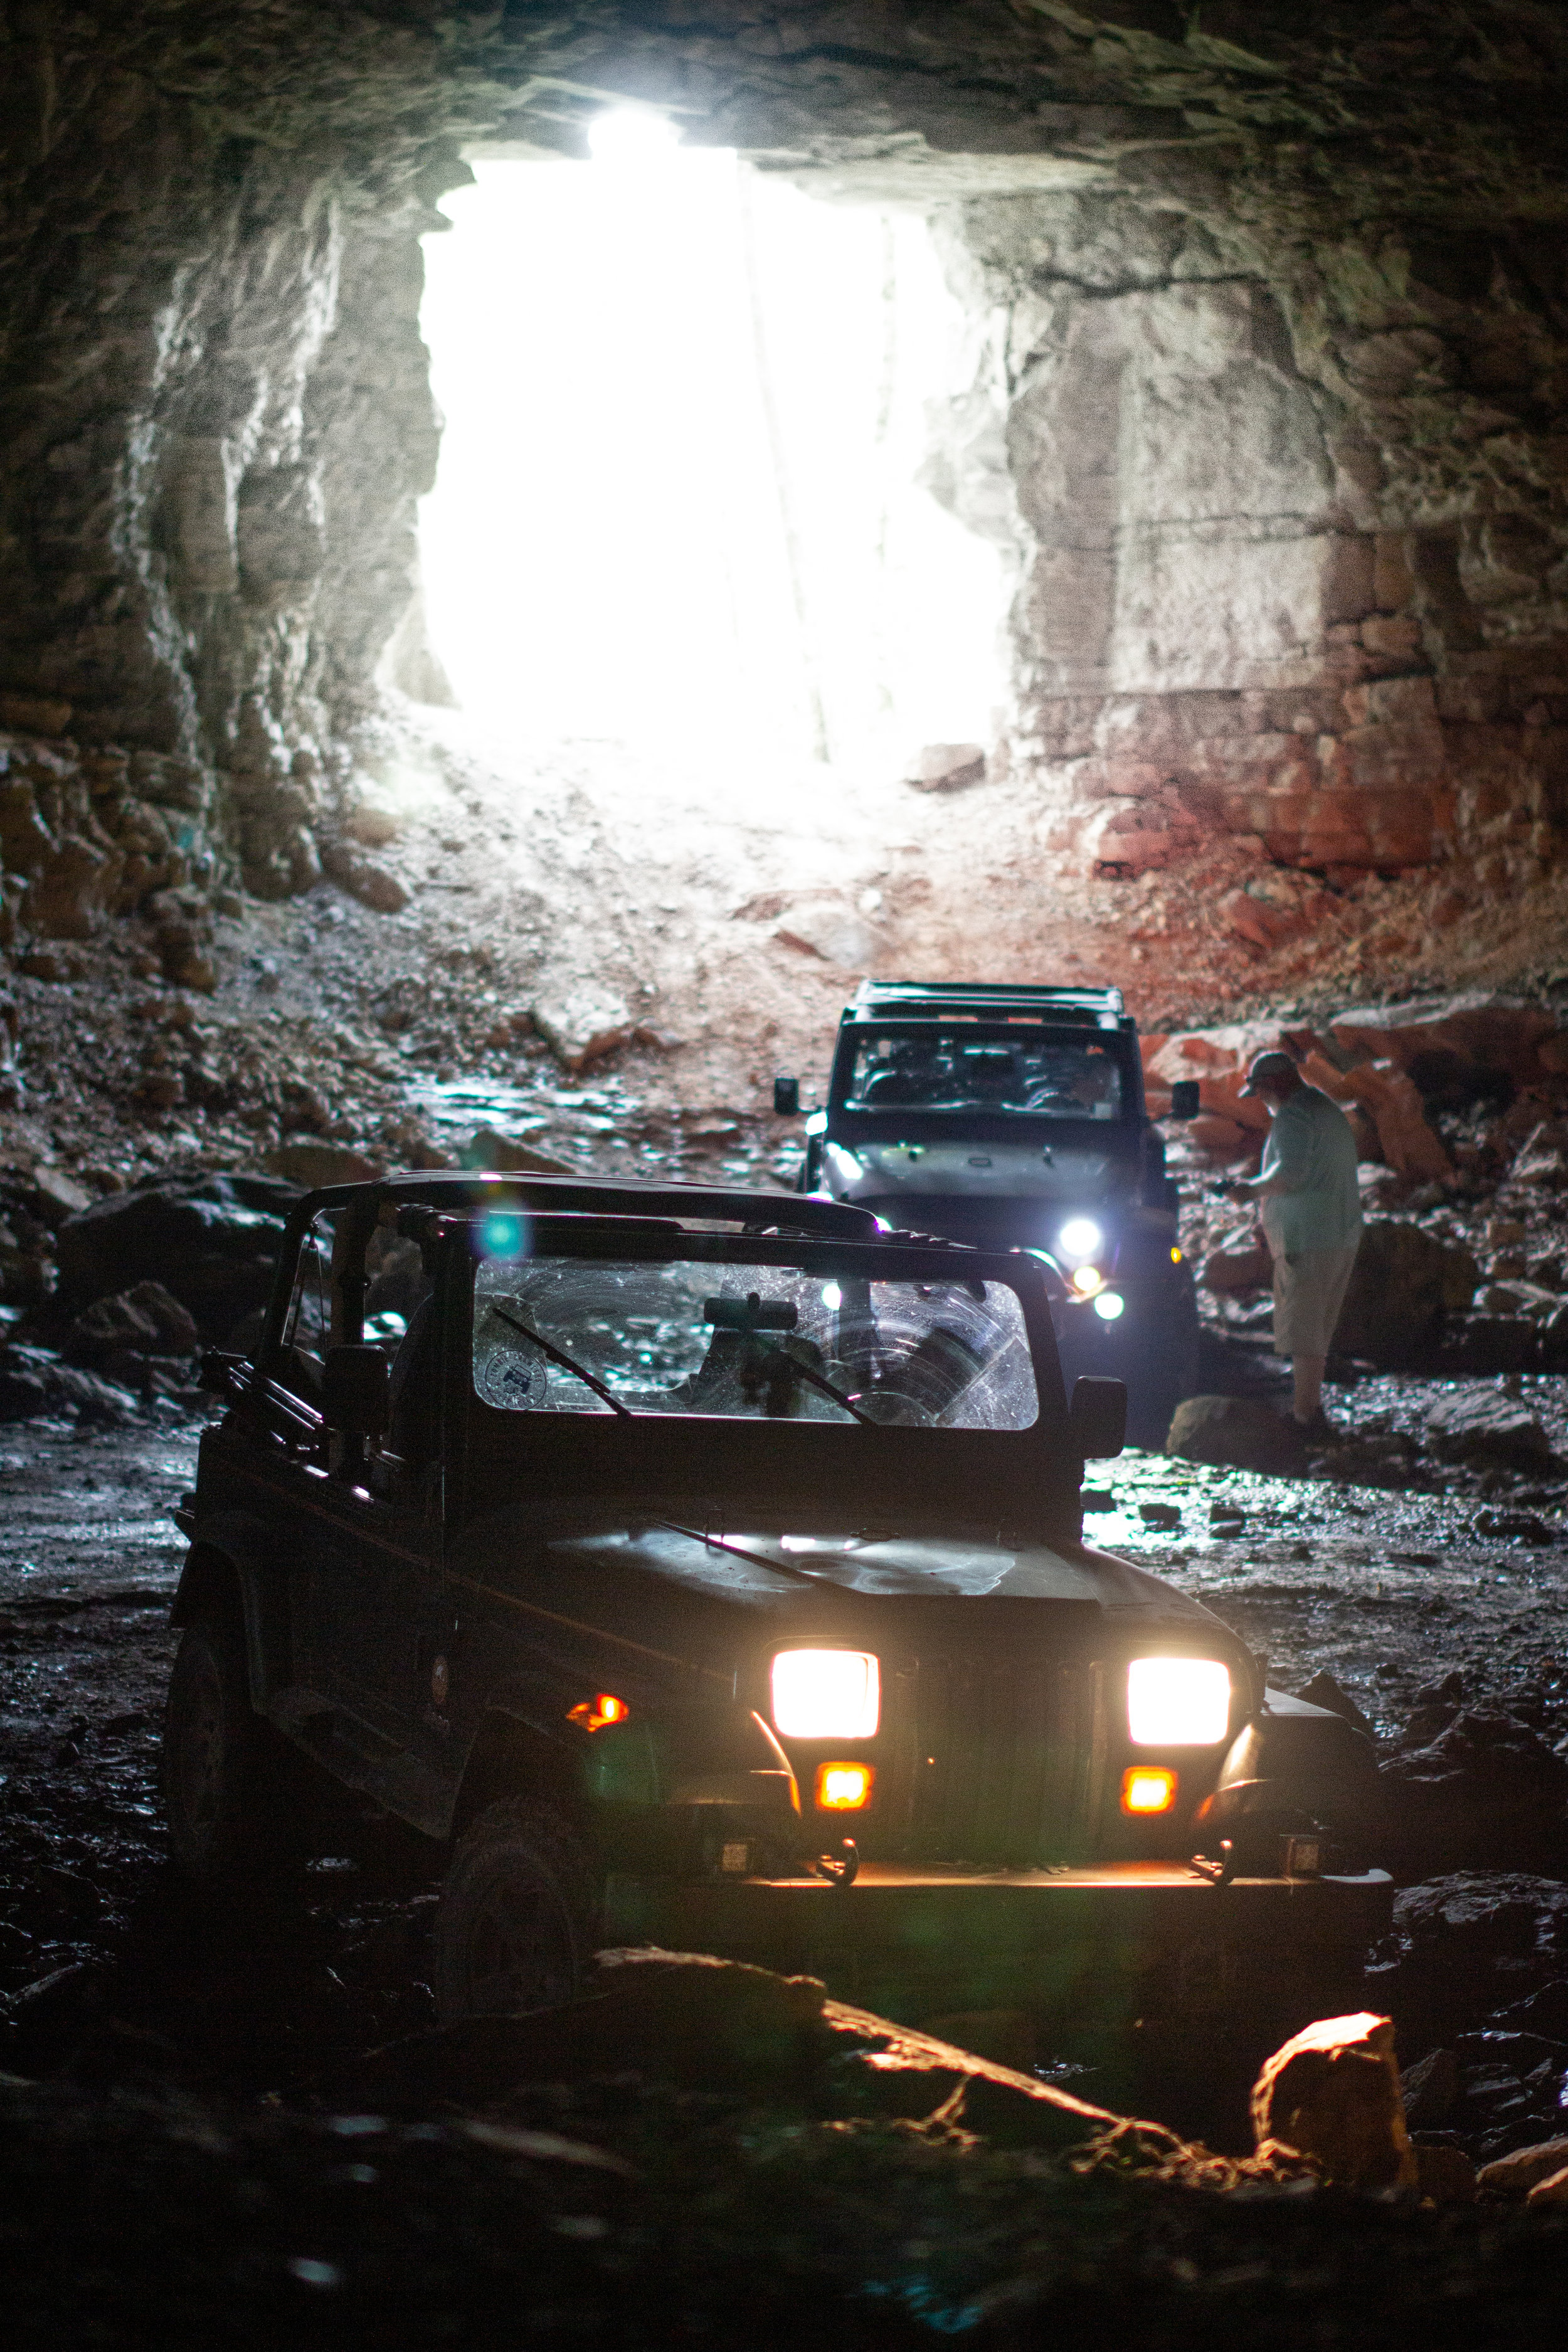 Turning fun into education! - this trip was exciting and fun, a slight mechanical mishap turned into educational excitement , teaching new Jeepers how to winch safely ! turning a little embarrassment into something VERY positive for others.. We're glad slight mishaps sometimes occur!